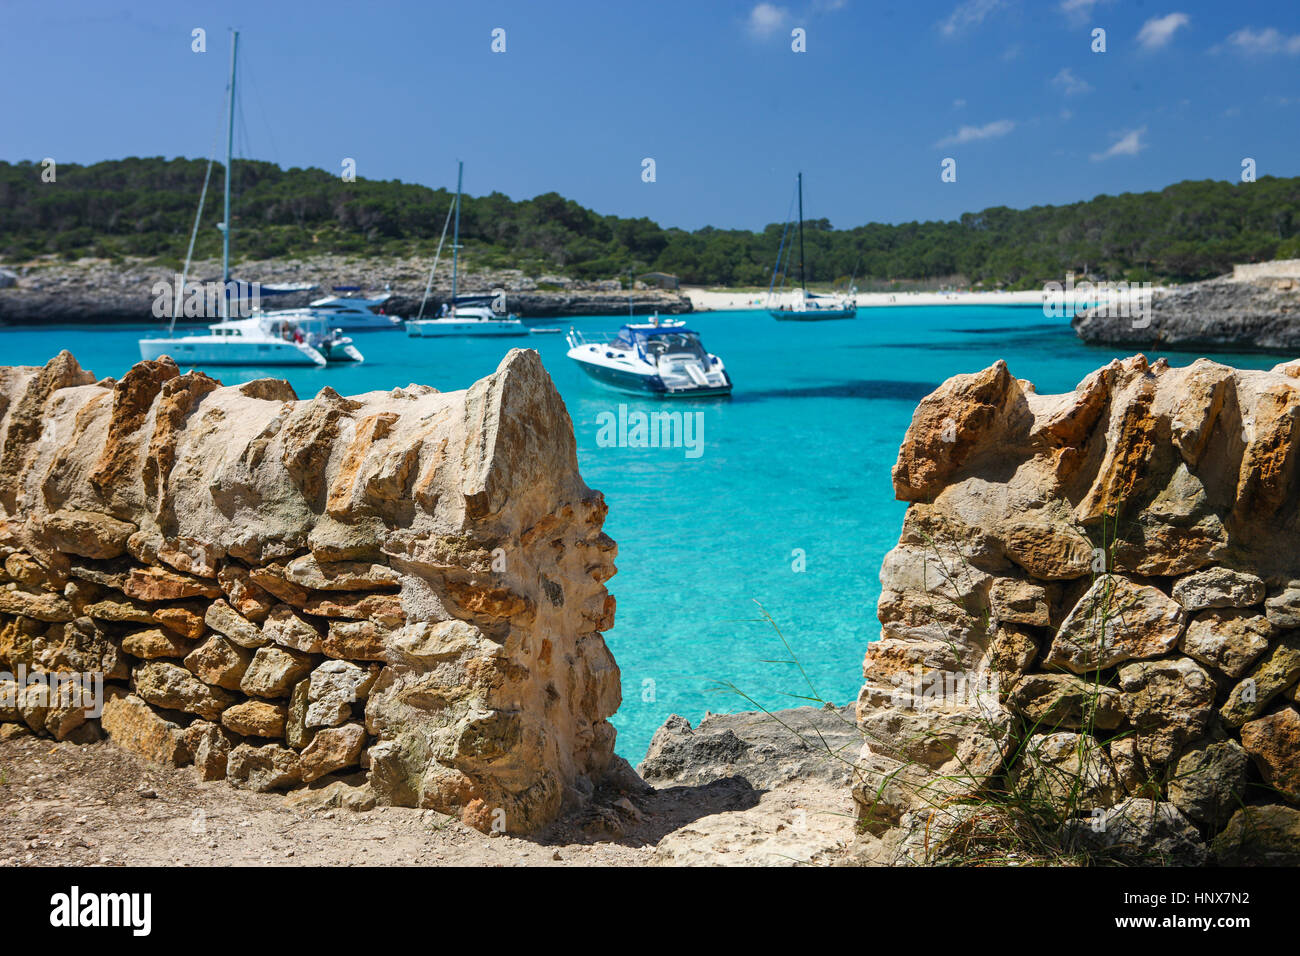 Traditional stone wall and anchored yachts in bay, Majorca, Spain - Stock Image